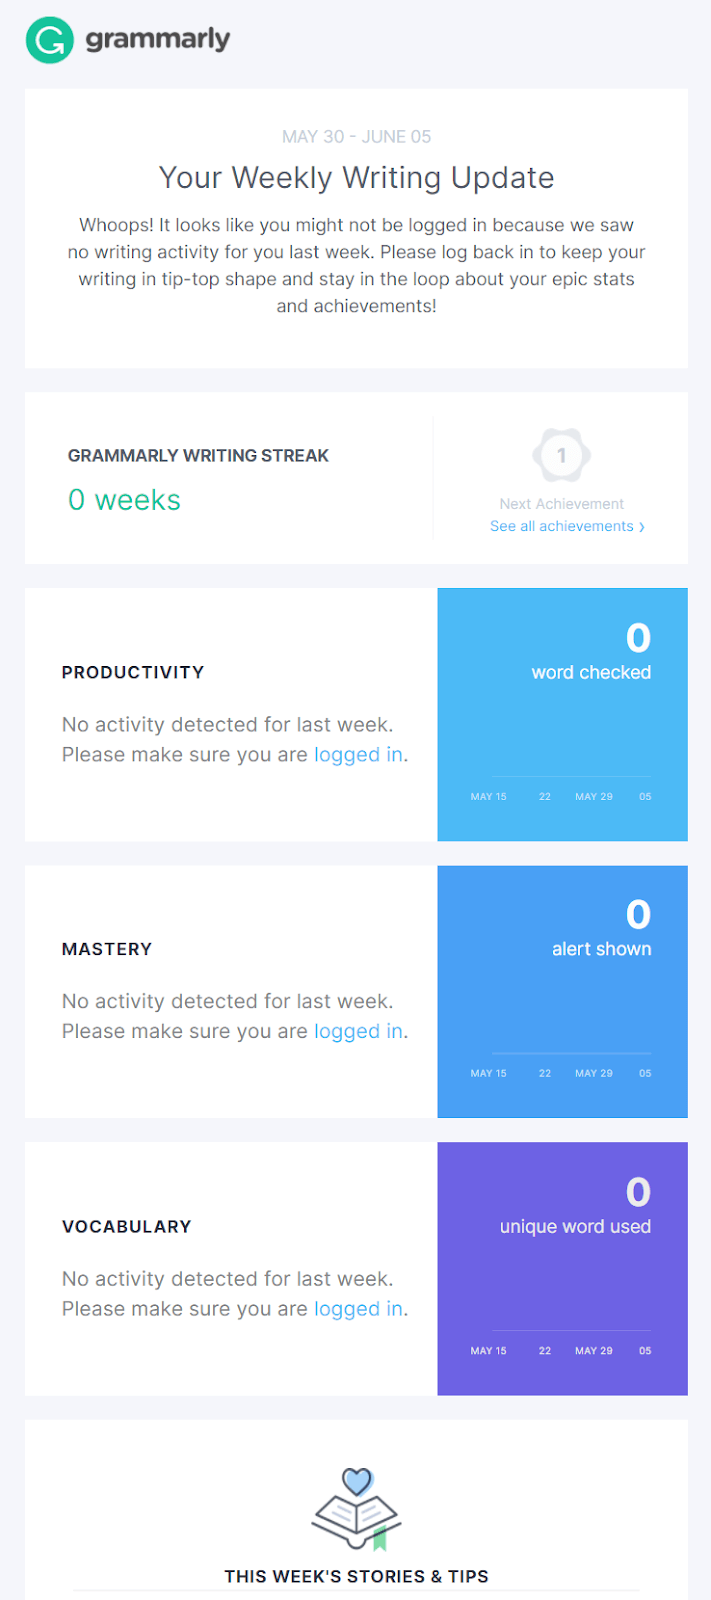 Onboarding email example Grammarly #7, first part